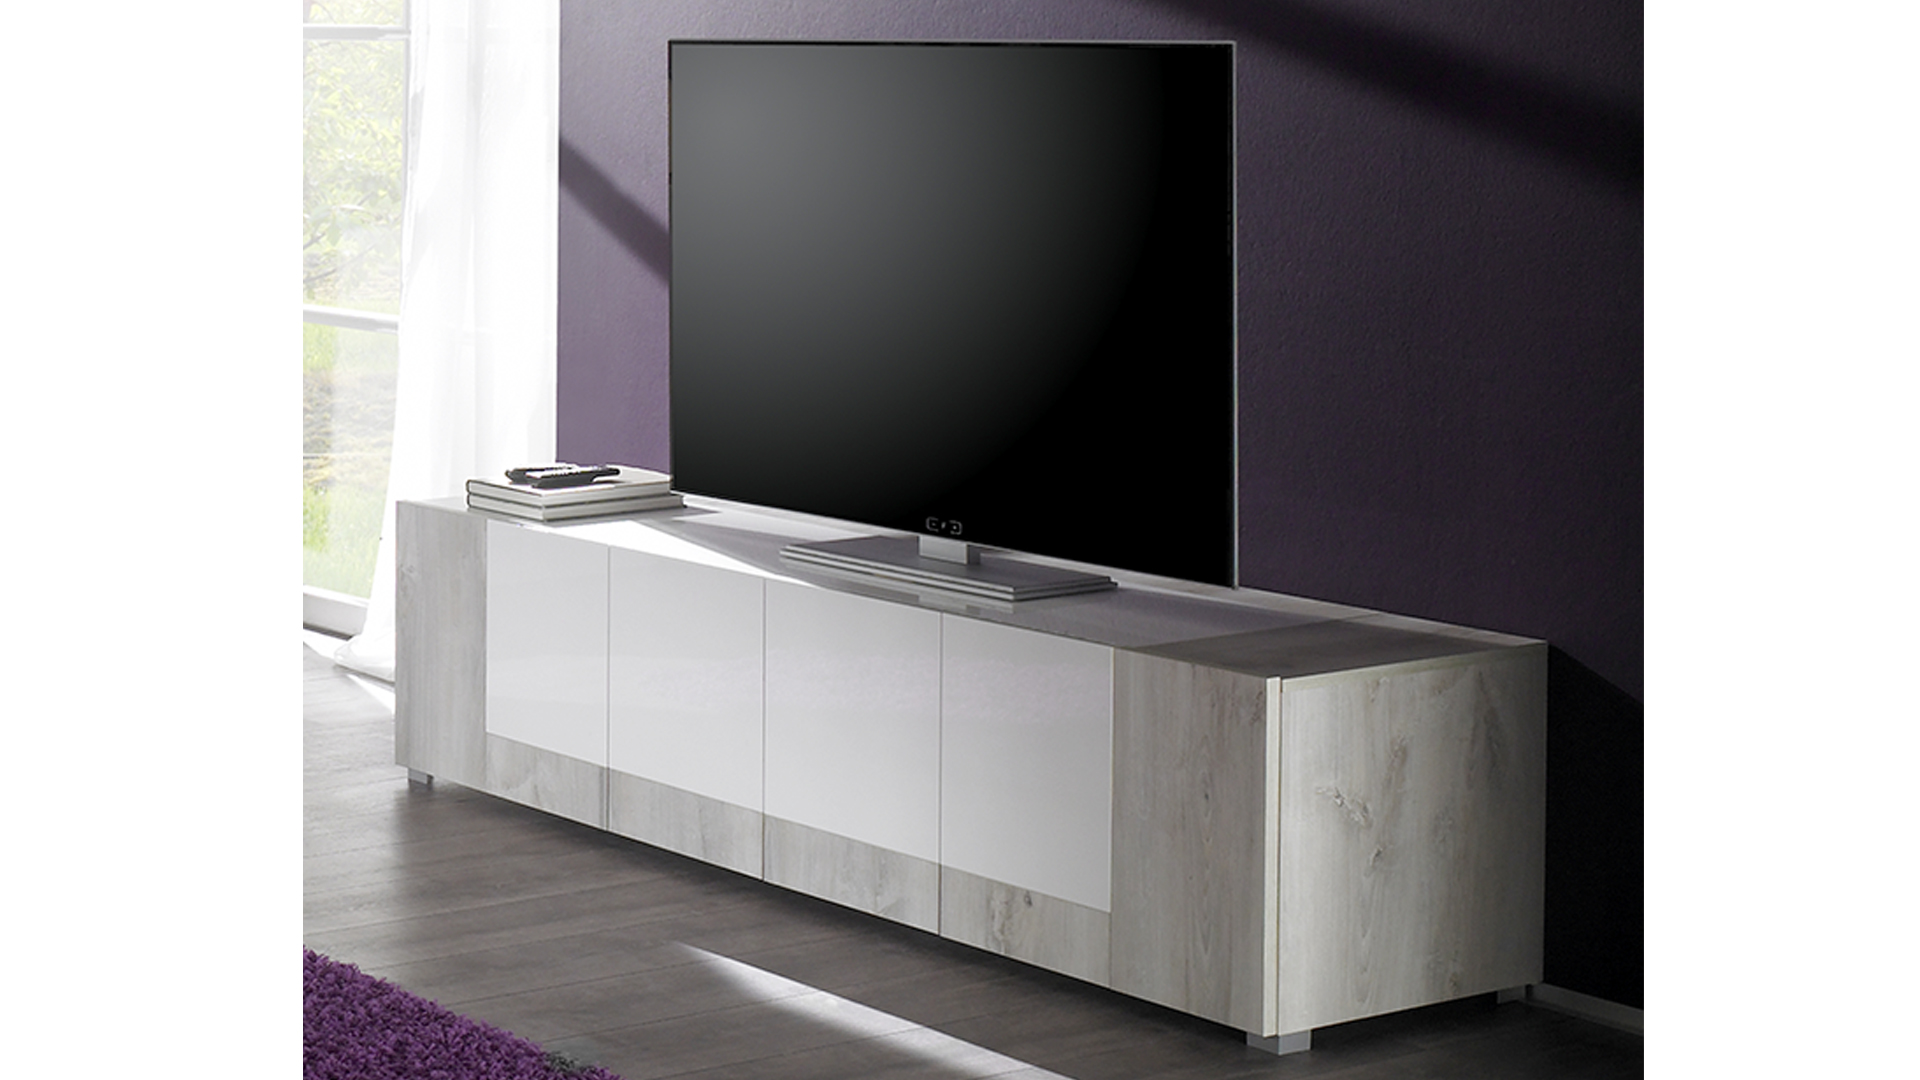 Meuble Tv Arrondi Bois Cheap With Meuble Tv Arrondi Bois